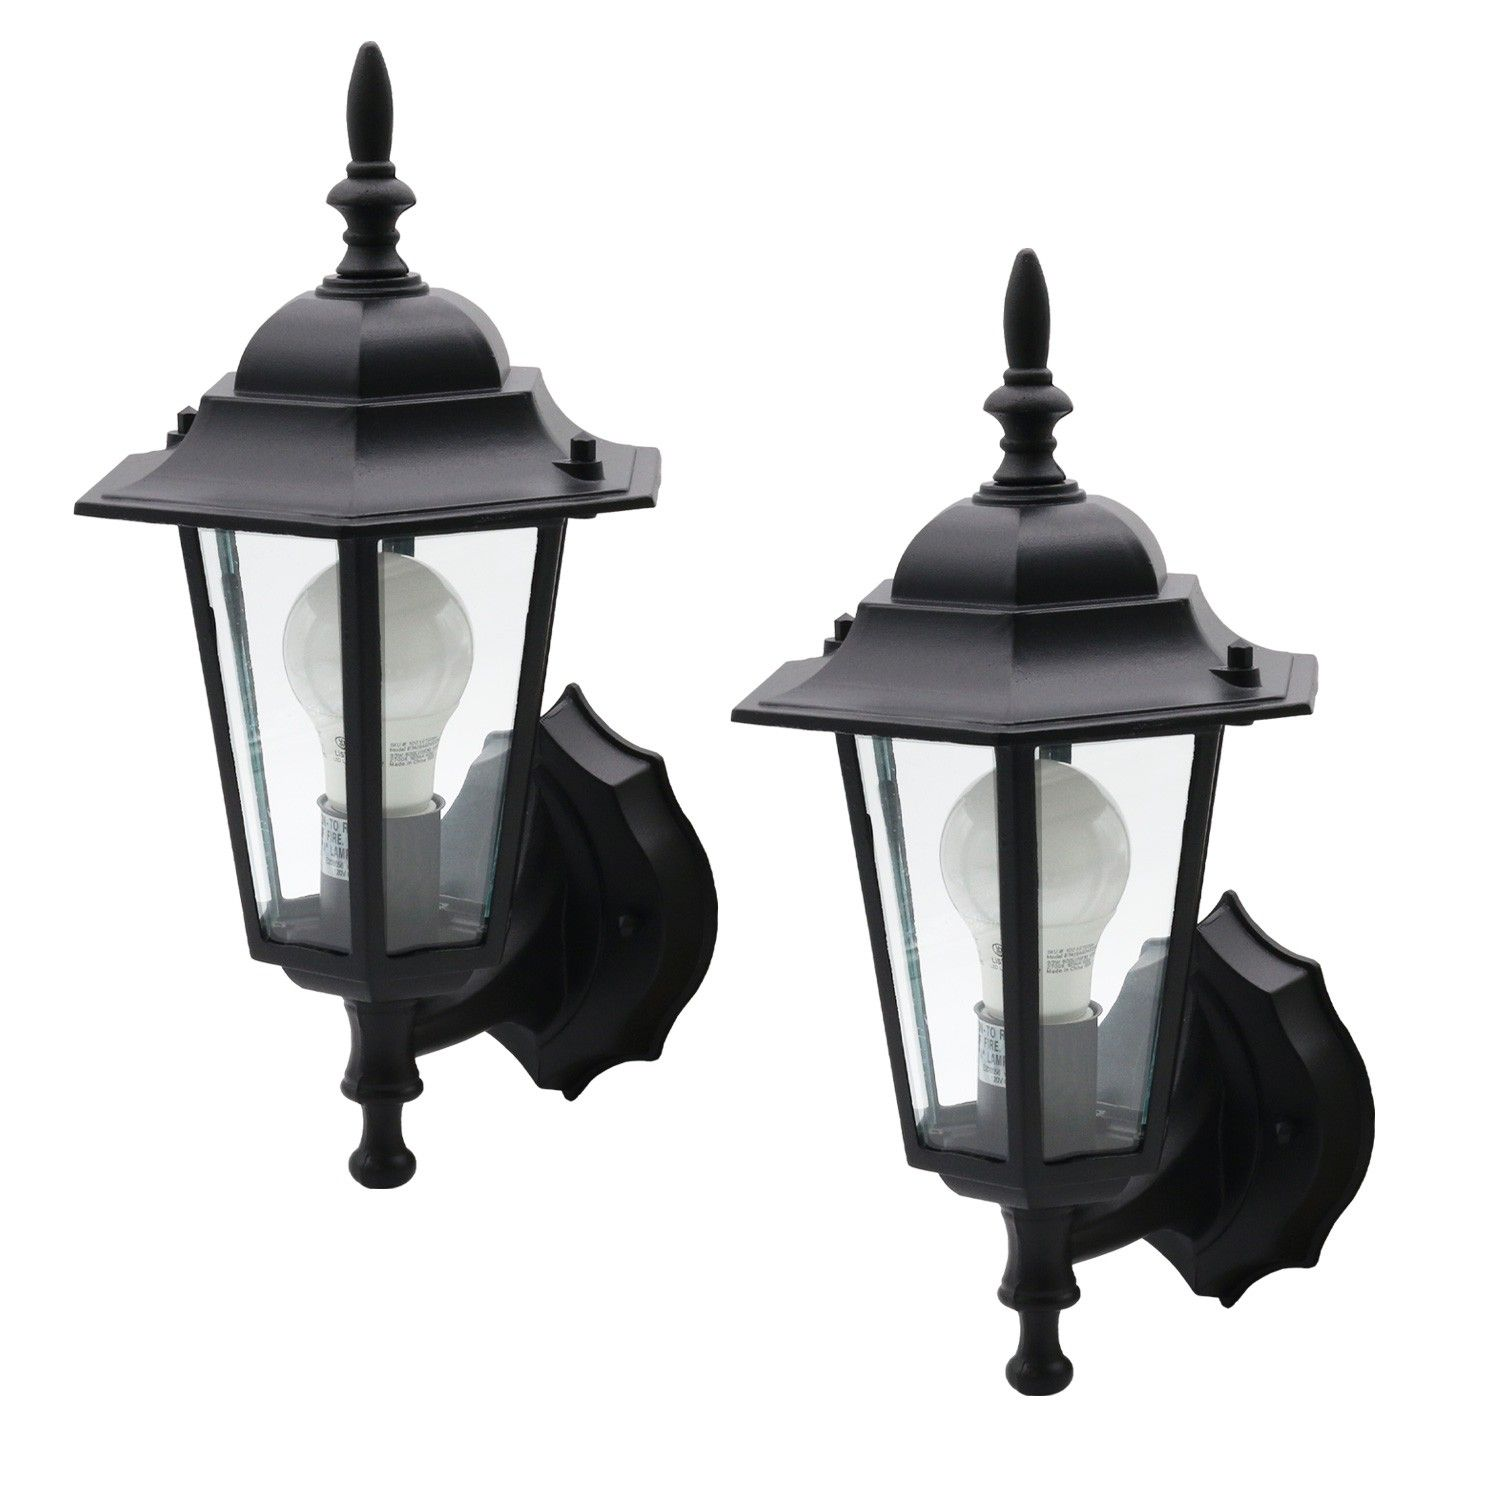 Ever 2 Pack Exterior One Light Lantern Wall Mount Outdoor Clear Glass Black In 2020 Outdoor Lighting Design Diy Outdoor Lighting Outdoor Light Fixtures